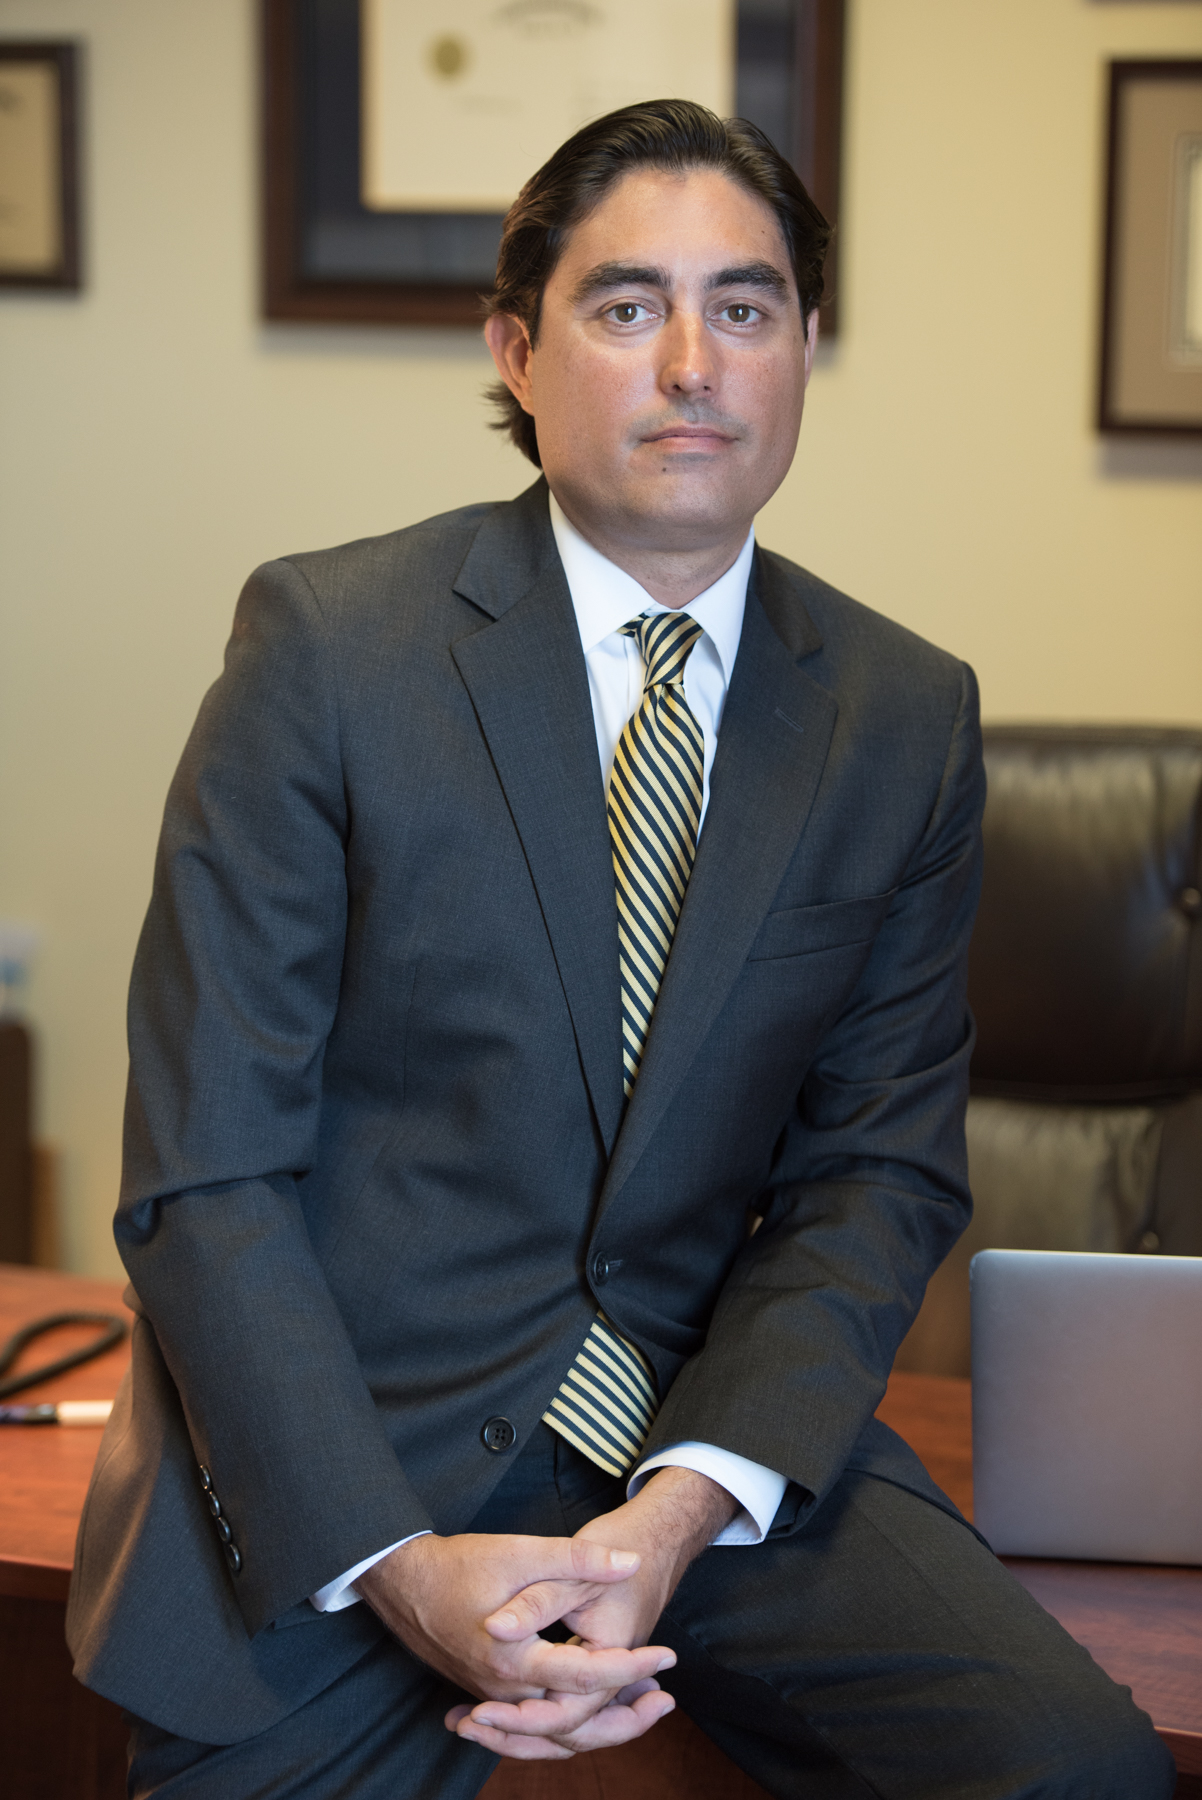 Charleston Immigration Lawyer David Vyborny